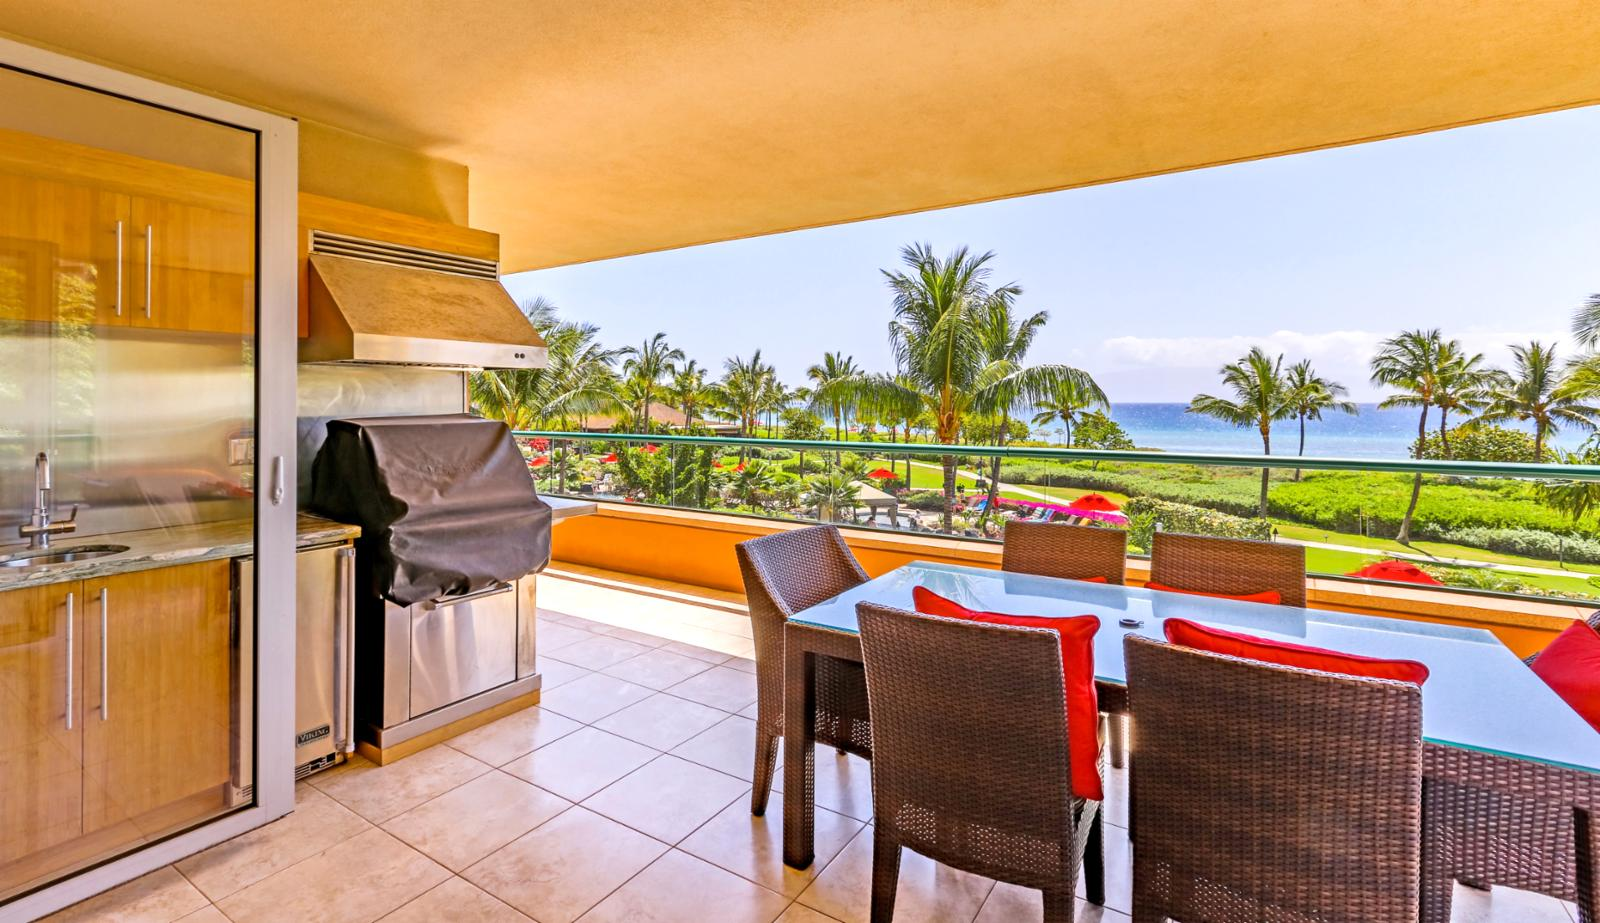 Great view with an outdoor Viking BBQ on the lanai for you to enjoy.